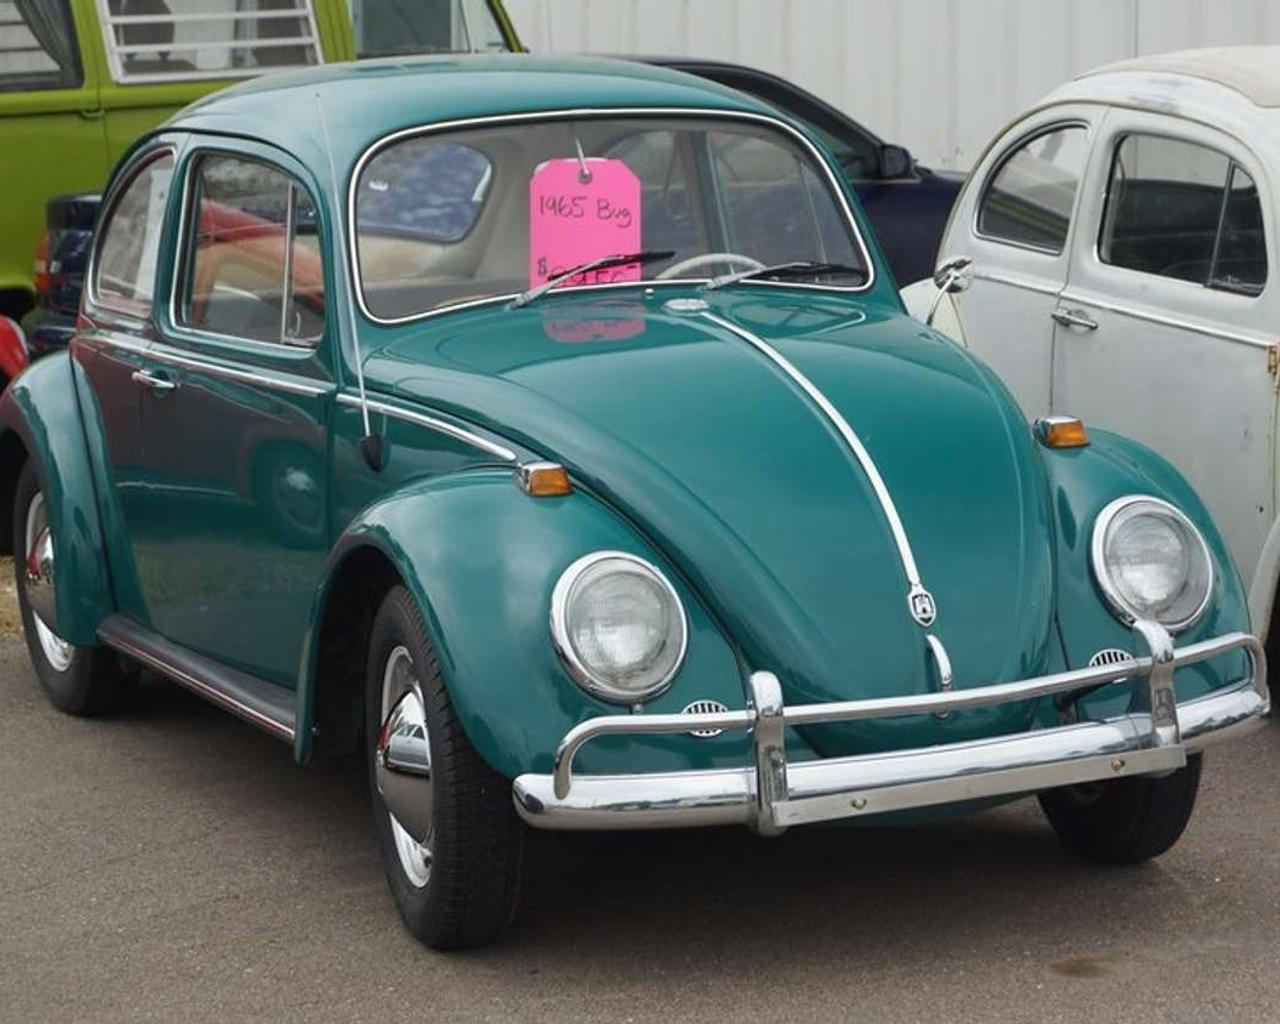 The Iconic Beetle By Volkswagen Is No More—Is This Foreshadowing The Fate Of All Small Cars?